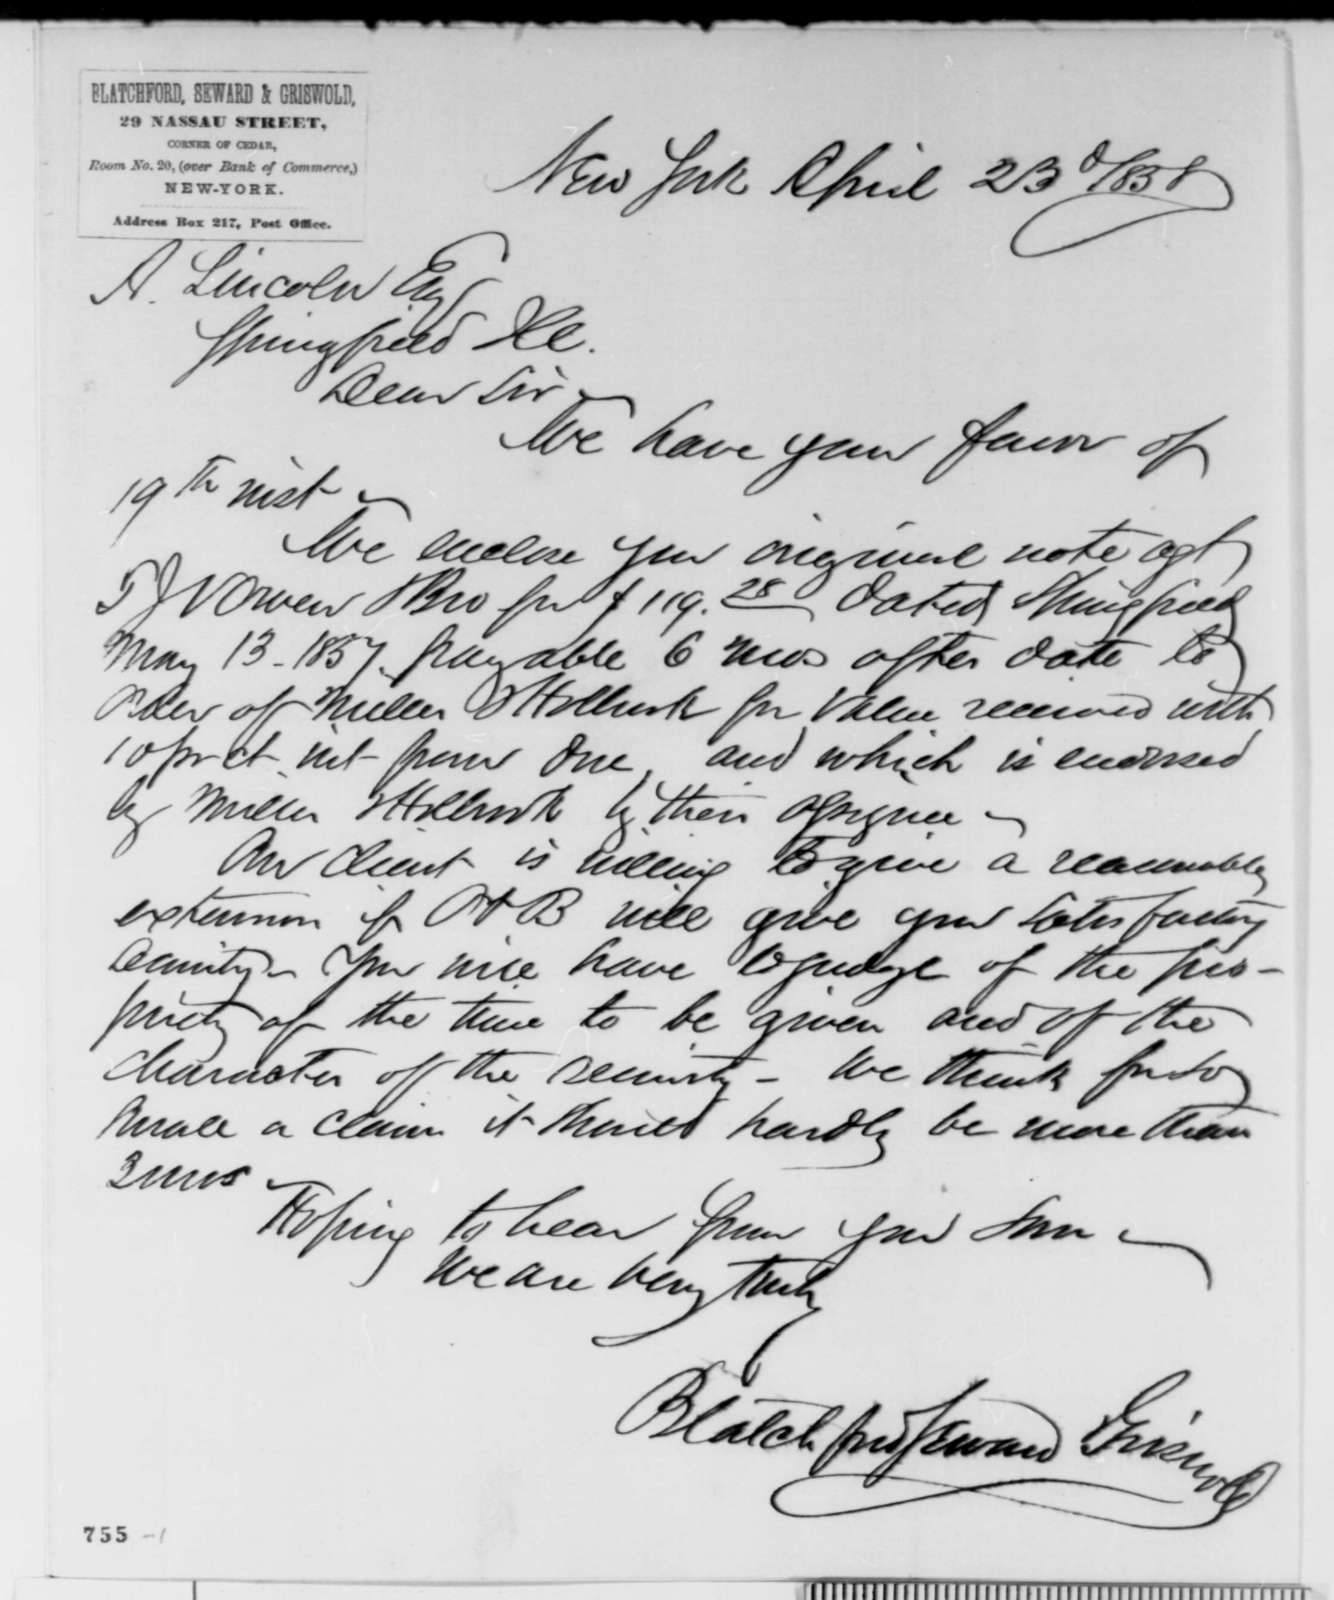 Blatchford, Seward & Griswold to Abraham Lincoln, Friday, April 23, 1858  (Legal)